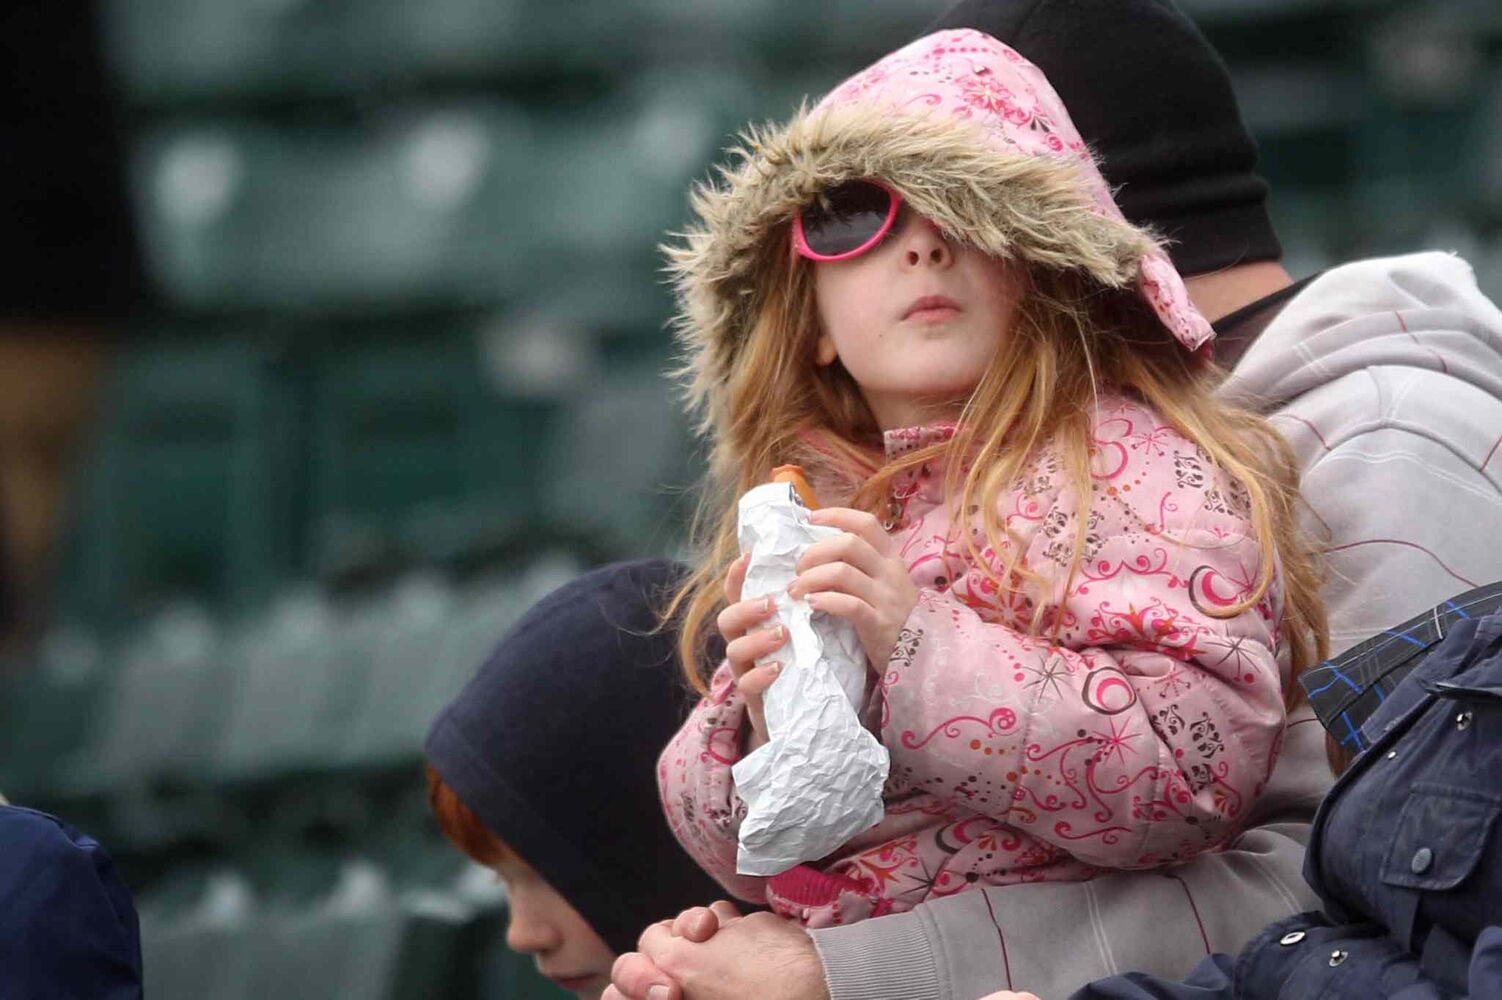 Saturday's weather turned out to be well below average seasonal temperatures, but that didn't stop a young girl in a fur-trimmed coat from enjoying a promised hotdog while watching the Goldeyes on the field. (Ruth Bonneville / Winnipeg Free Press)